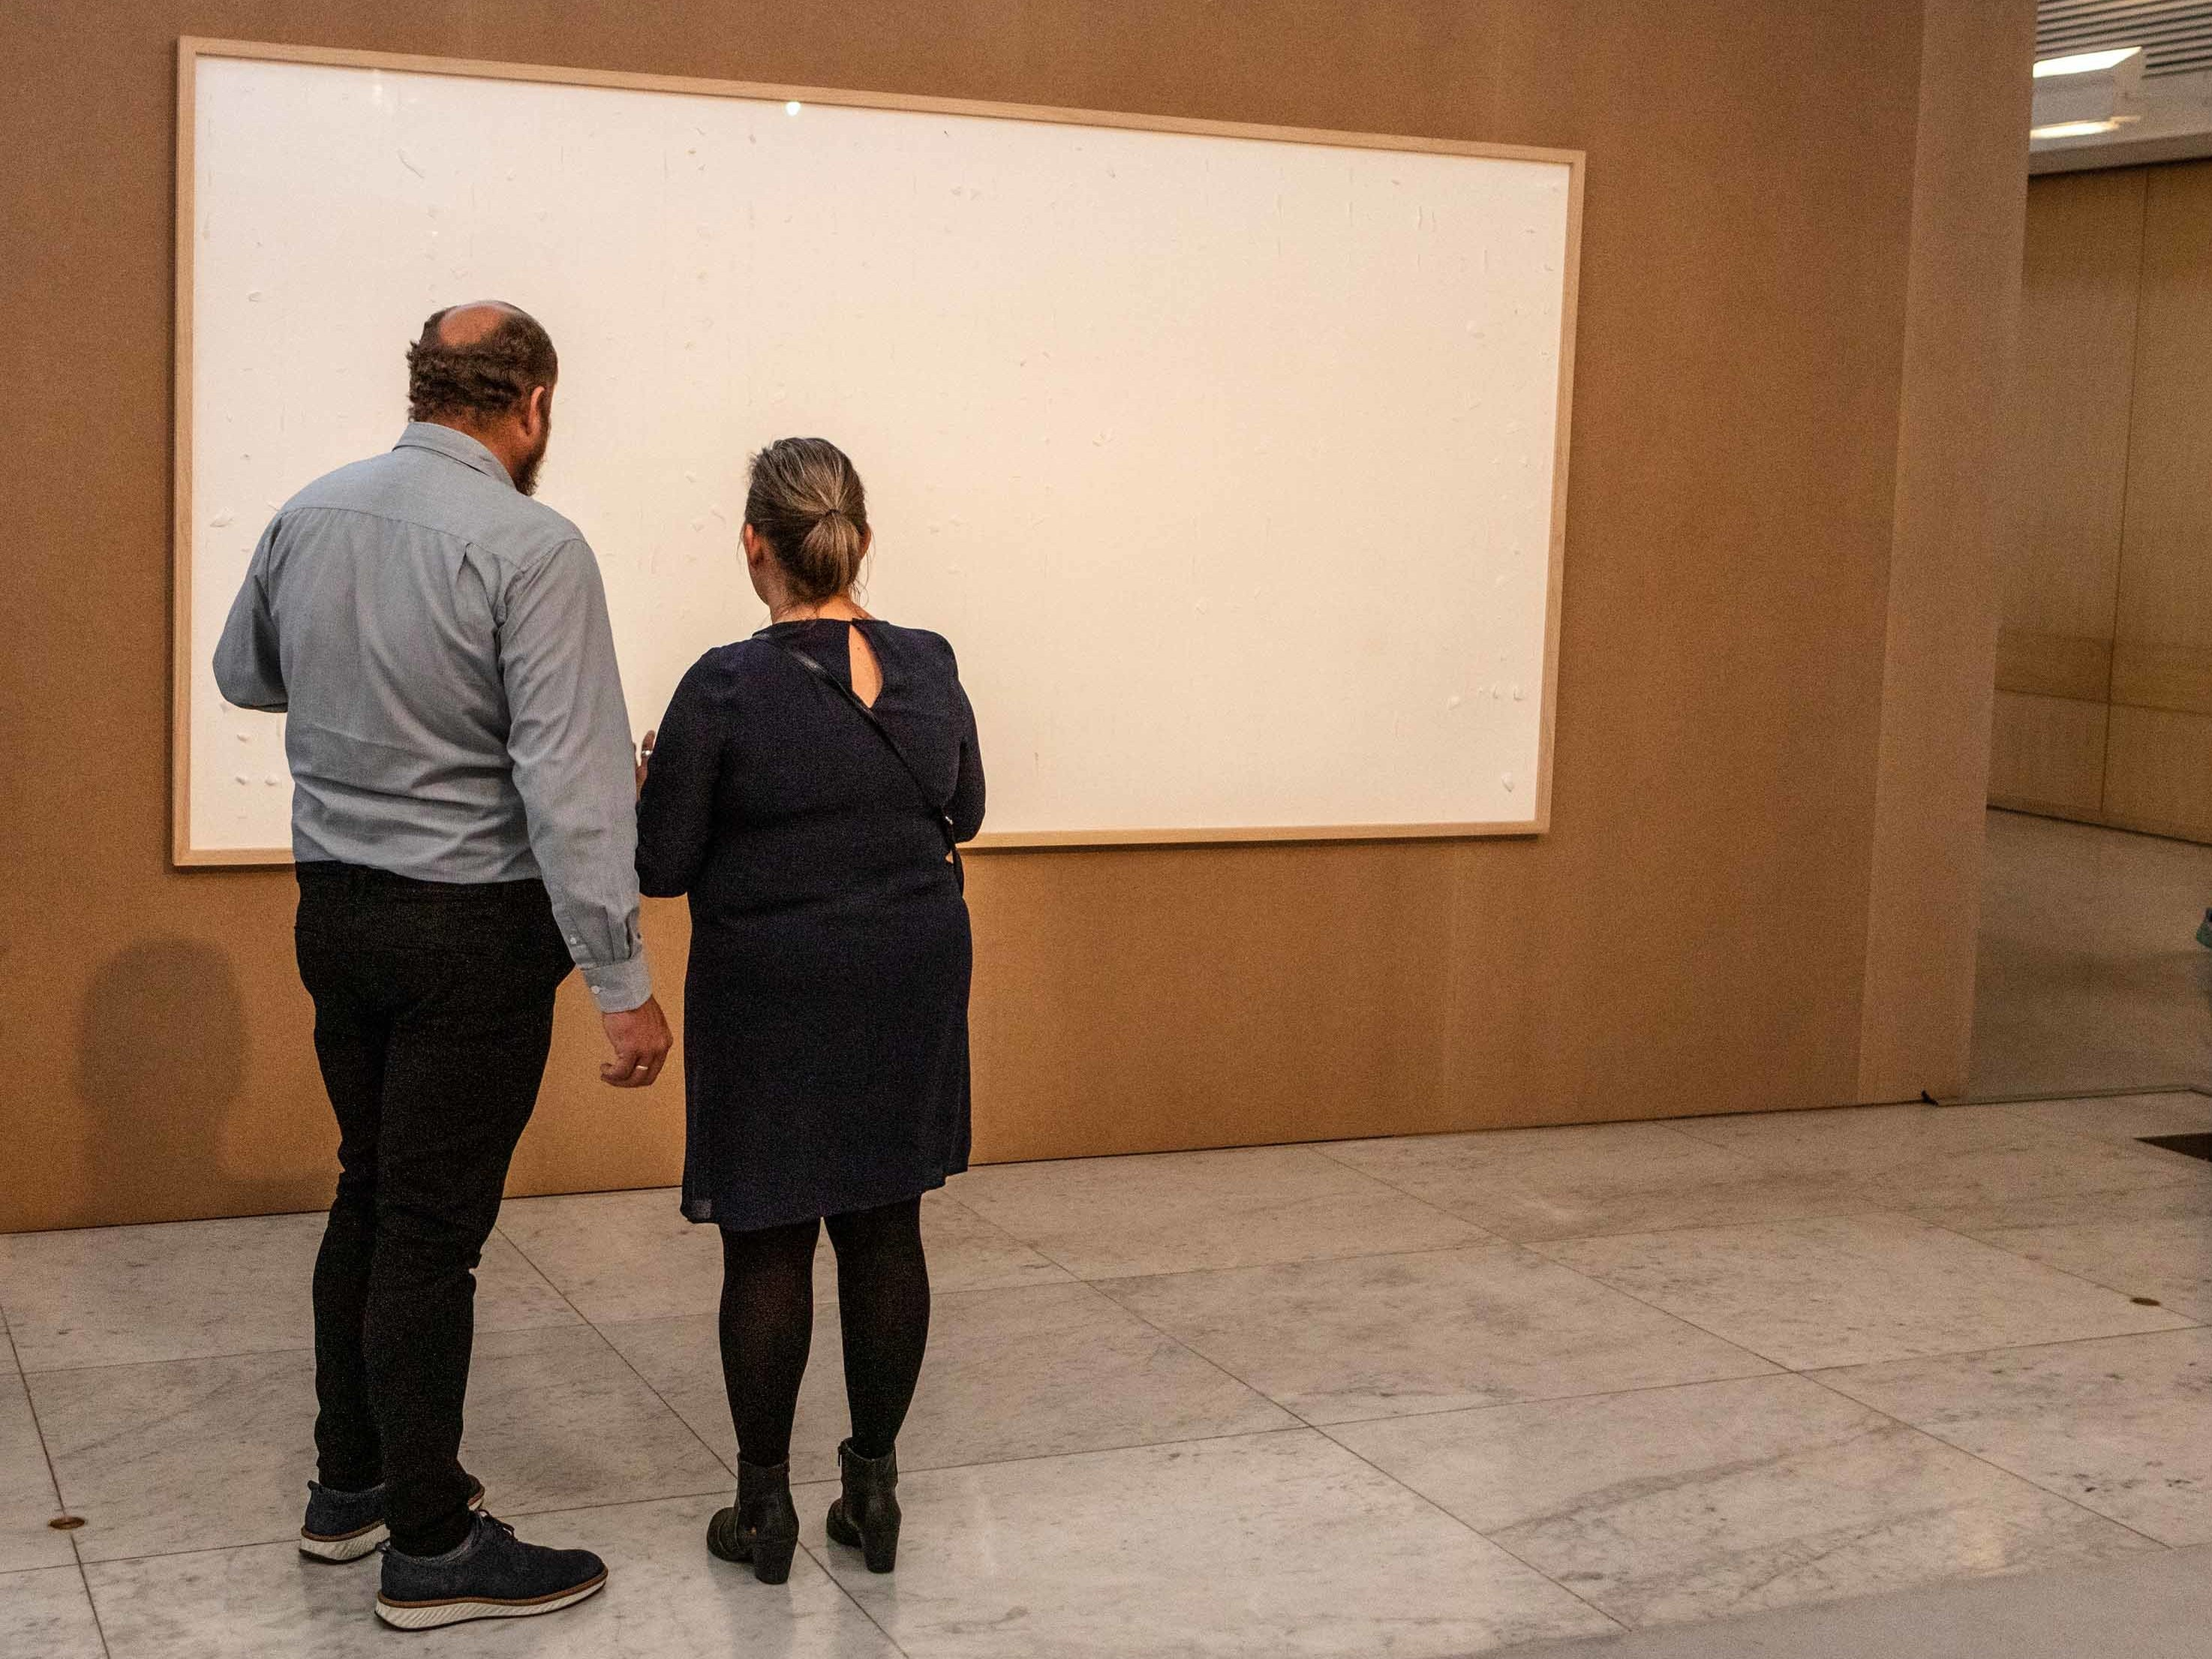 Artist Jens Haaning Took $84,000 And Sent A Museum 2 Blank ...